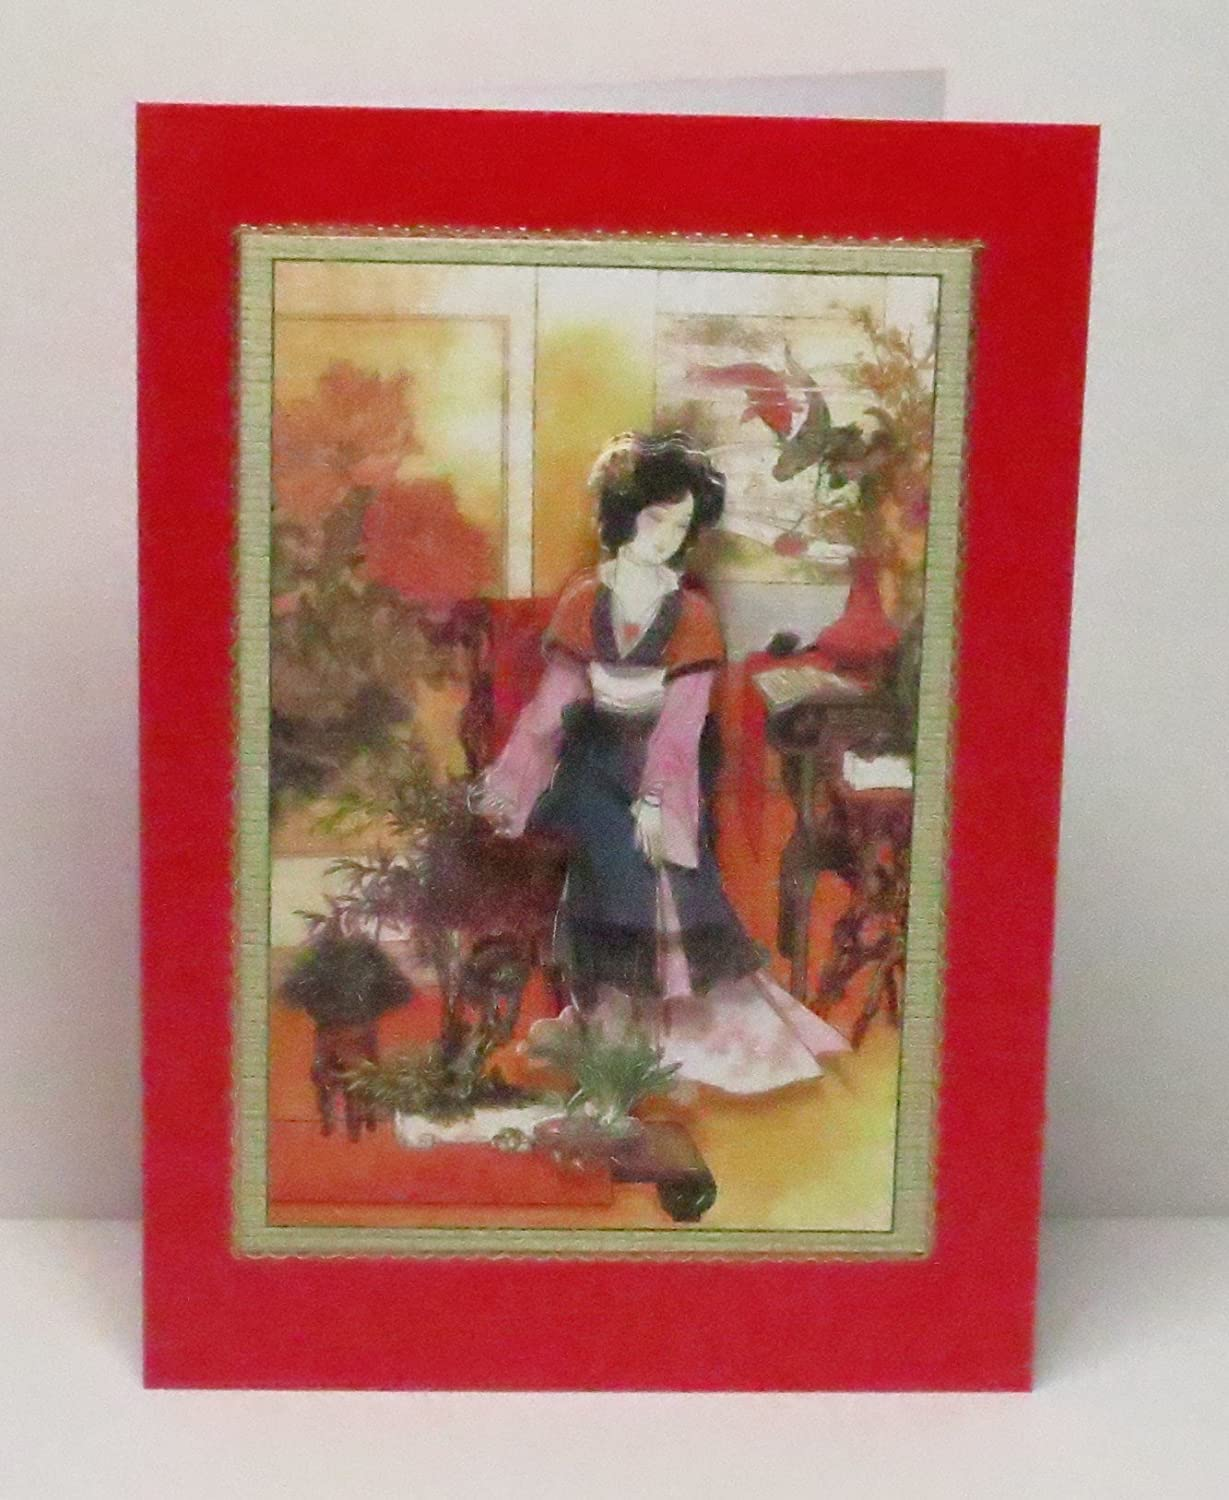 Handmade 3D Oriental Lady with Plants Blank Greeting Card with Glittered Highlights /& Gold Border Limited Edition on Red Pearlescent Base For Any Occasion